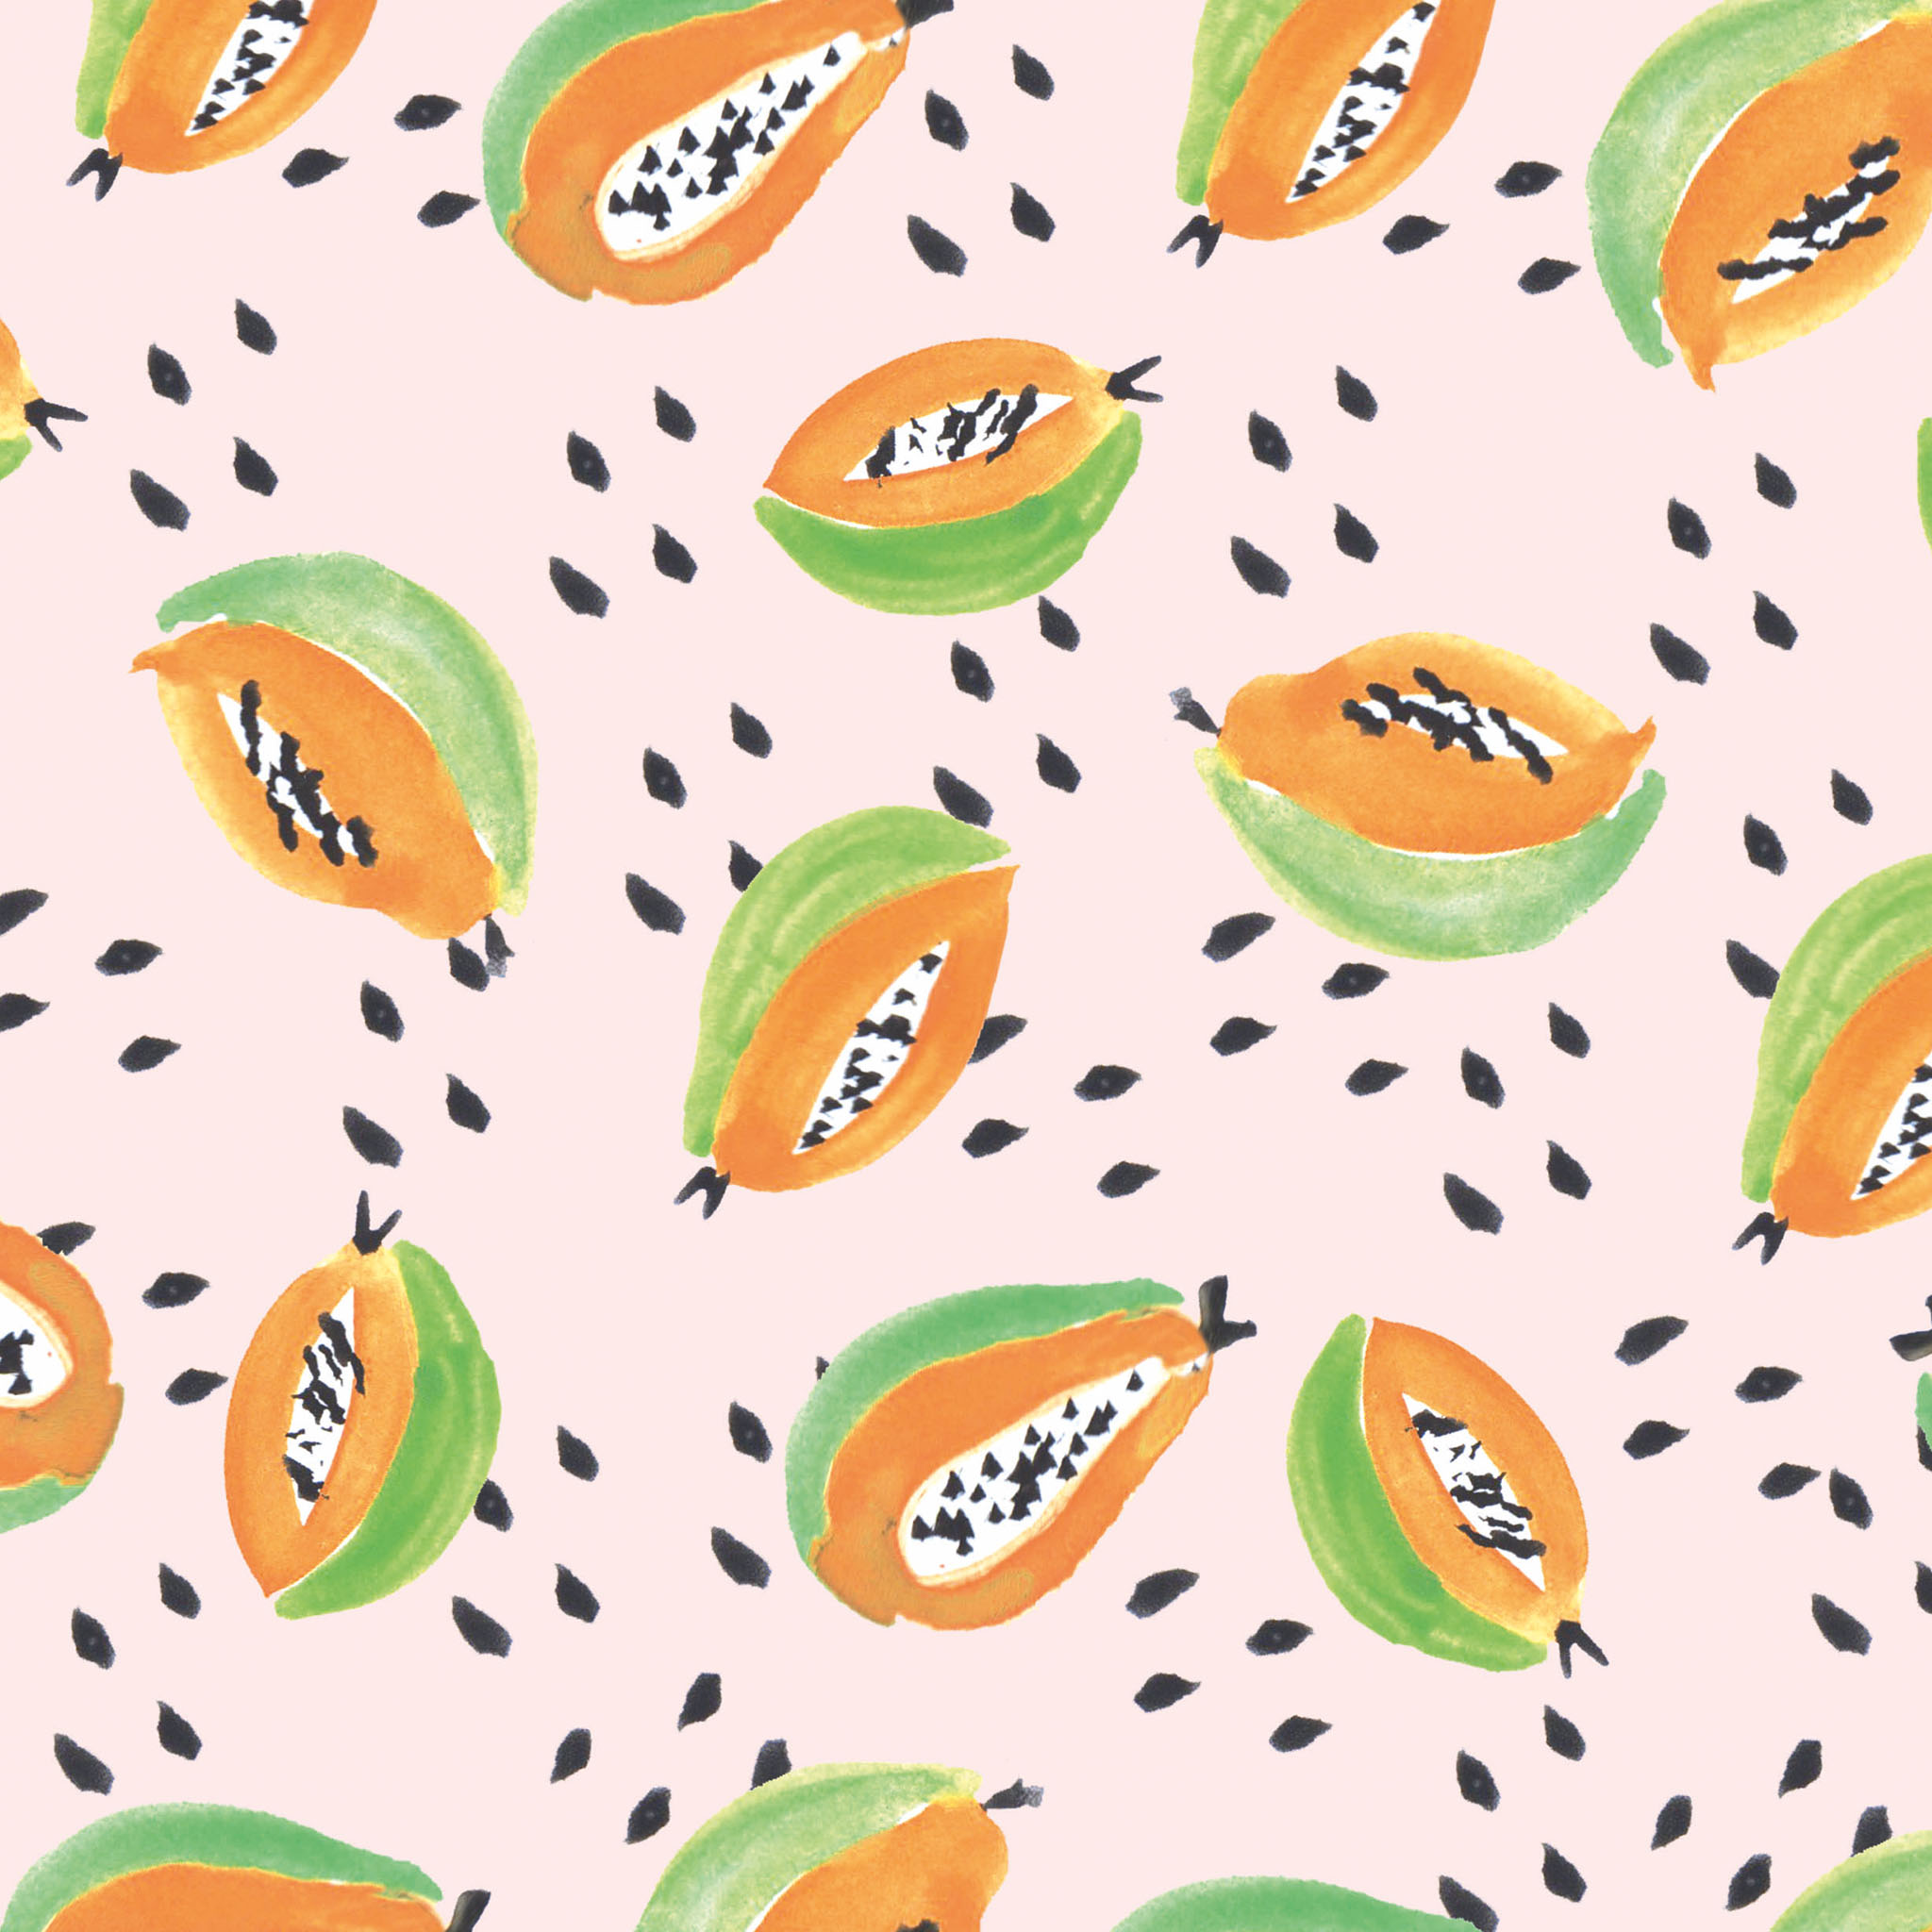 Download Free Illustrated Papaya Wallpaper For Your Phone